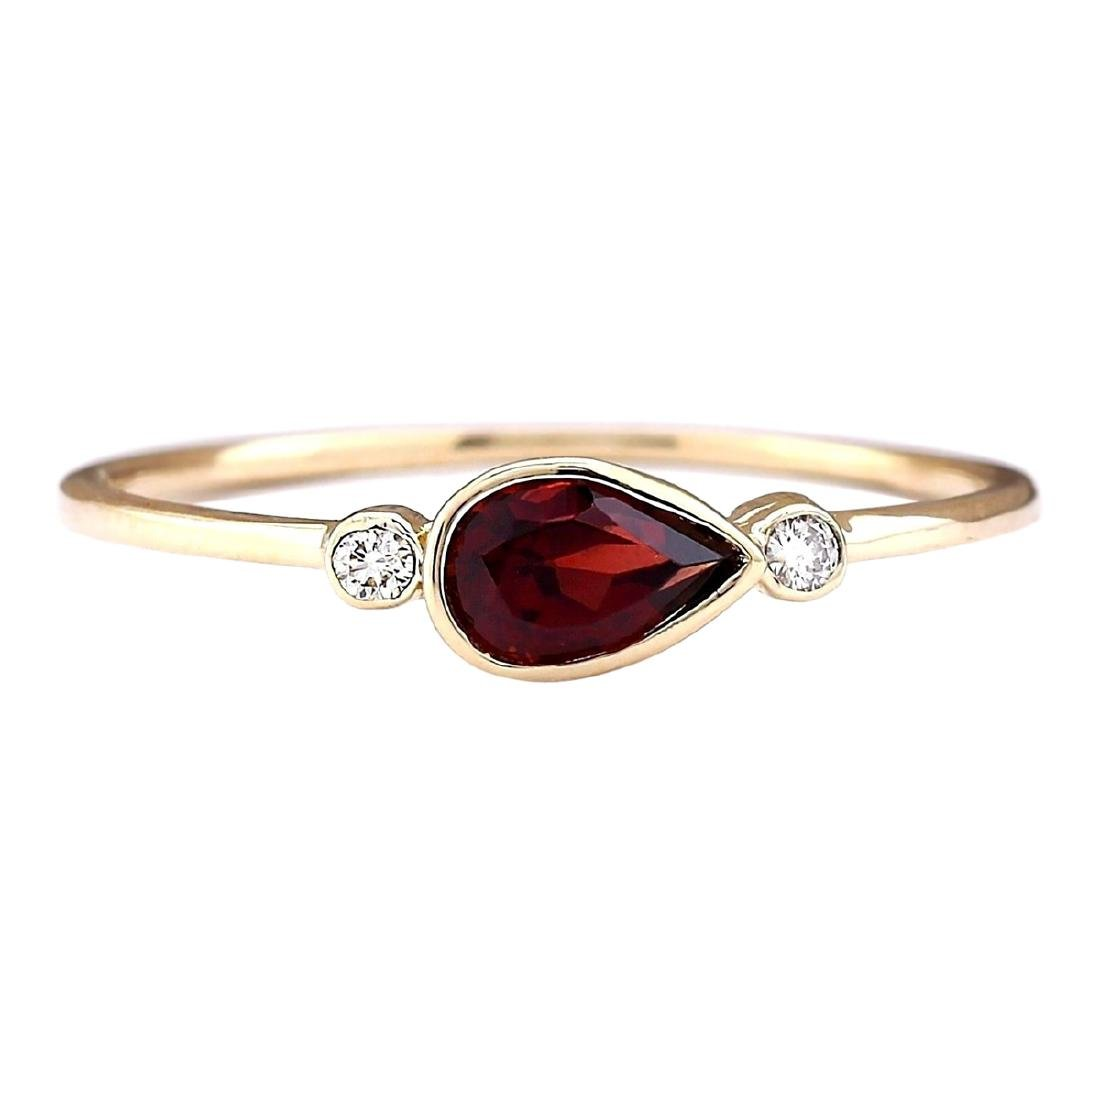 0.56 CTW Natural Rhodolite Garnet Ring In 18K Yellow